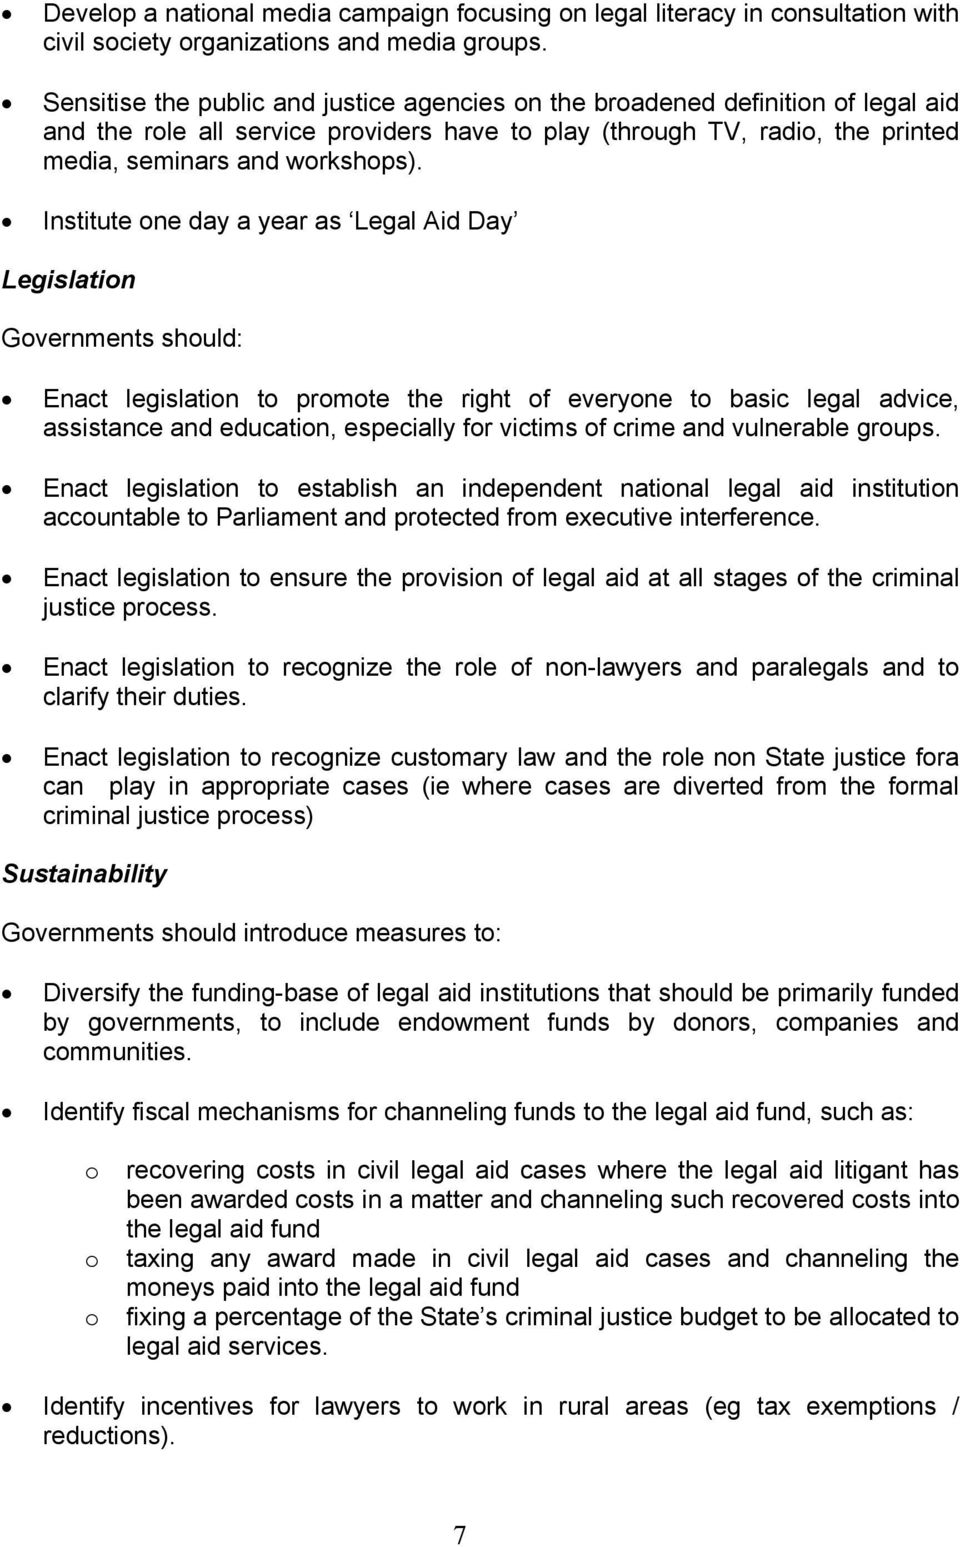 Institute one day a year as Legal Aid Day Legislation Governments should: Enact legislation to promote the right of everyone to basic legal advice, assistance and education, especially for victims of